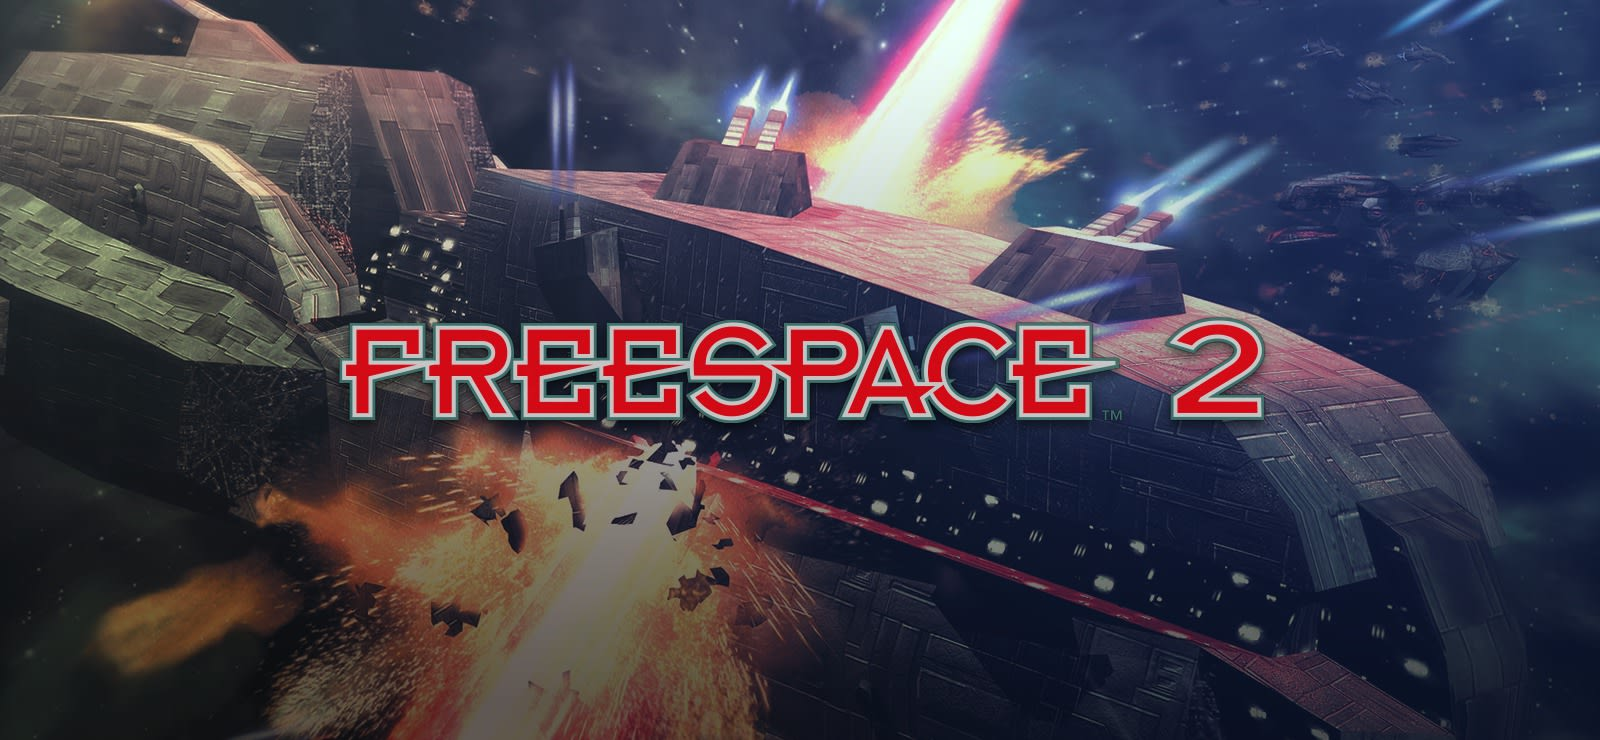 Freespace 2 varies-with-device